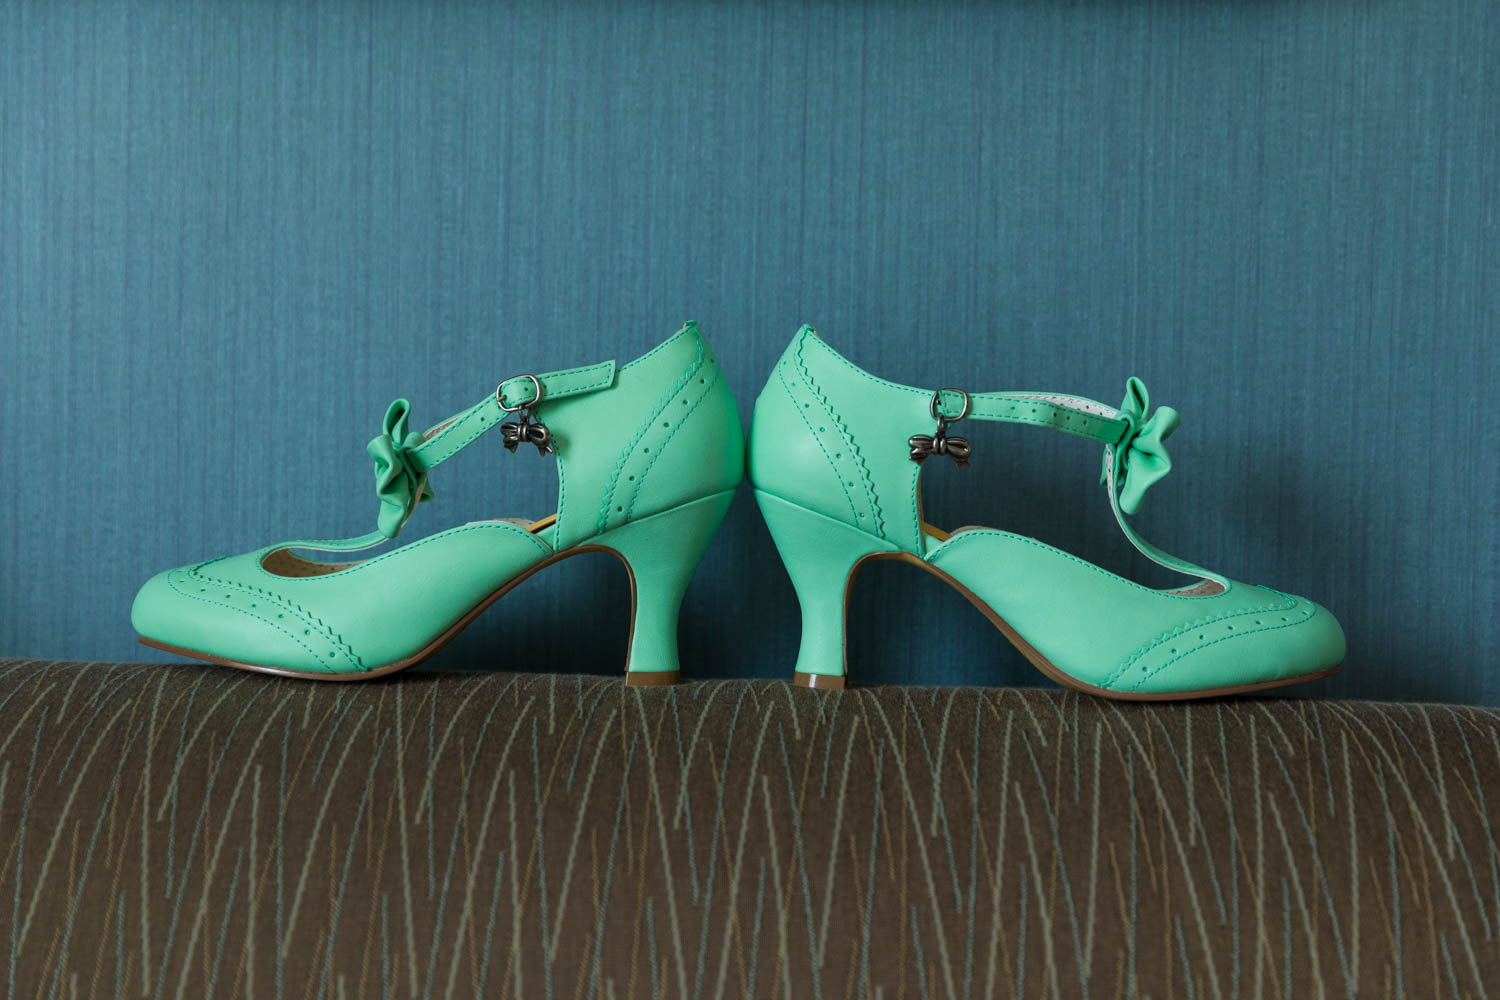 The bride's mint green shoes